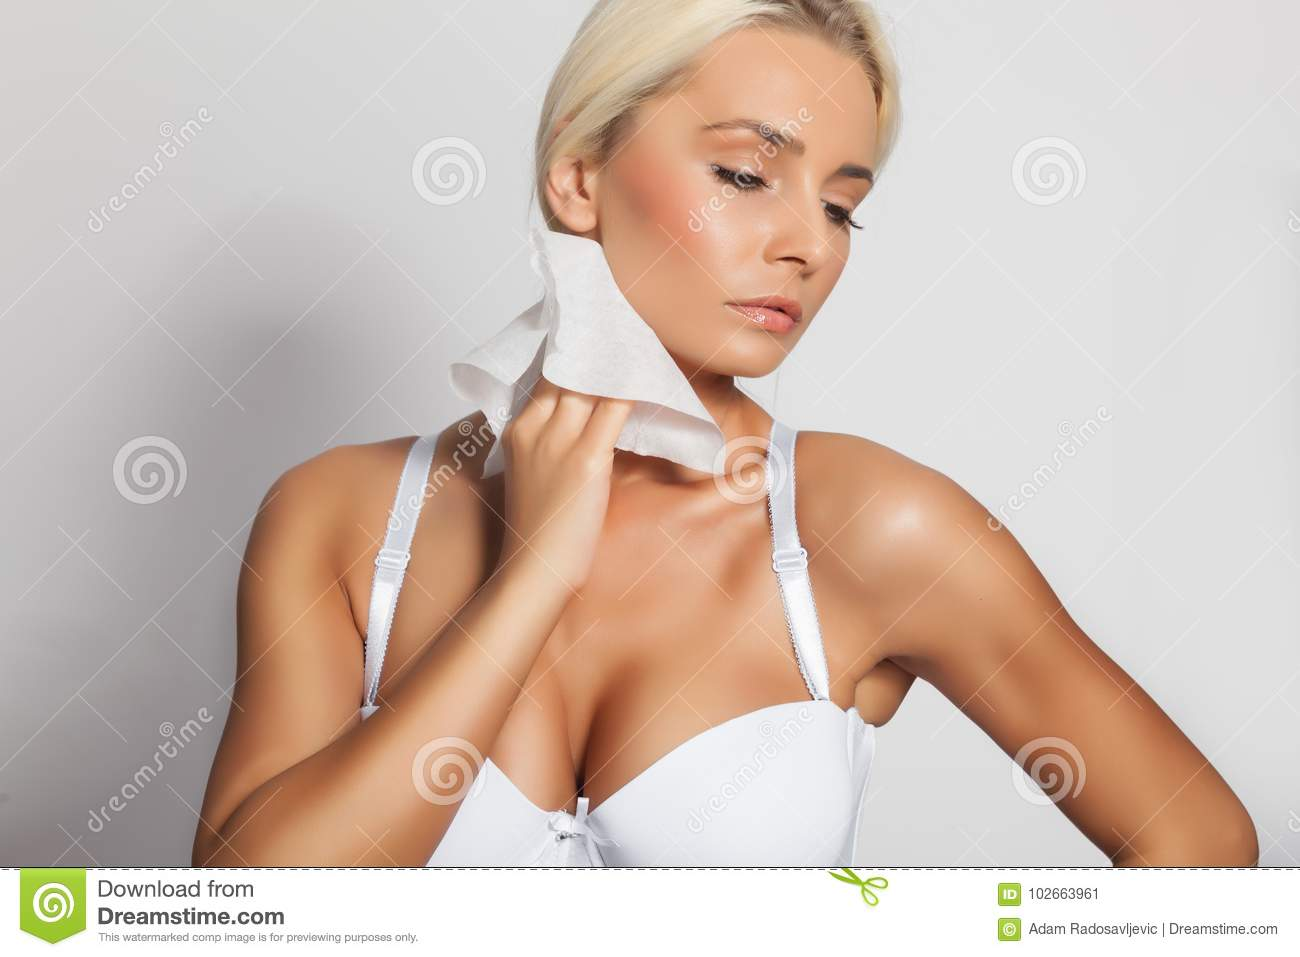 Woman Clean Neck With Wet Wipes Stock Image - Image of holding ... dfa1d9346